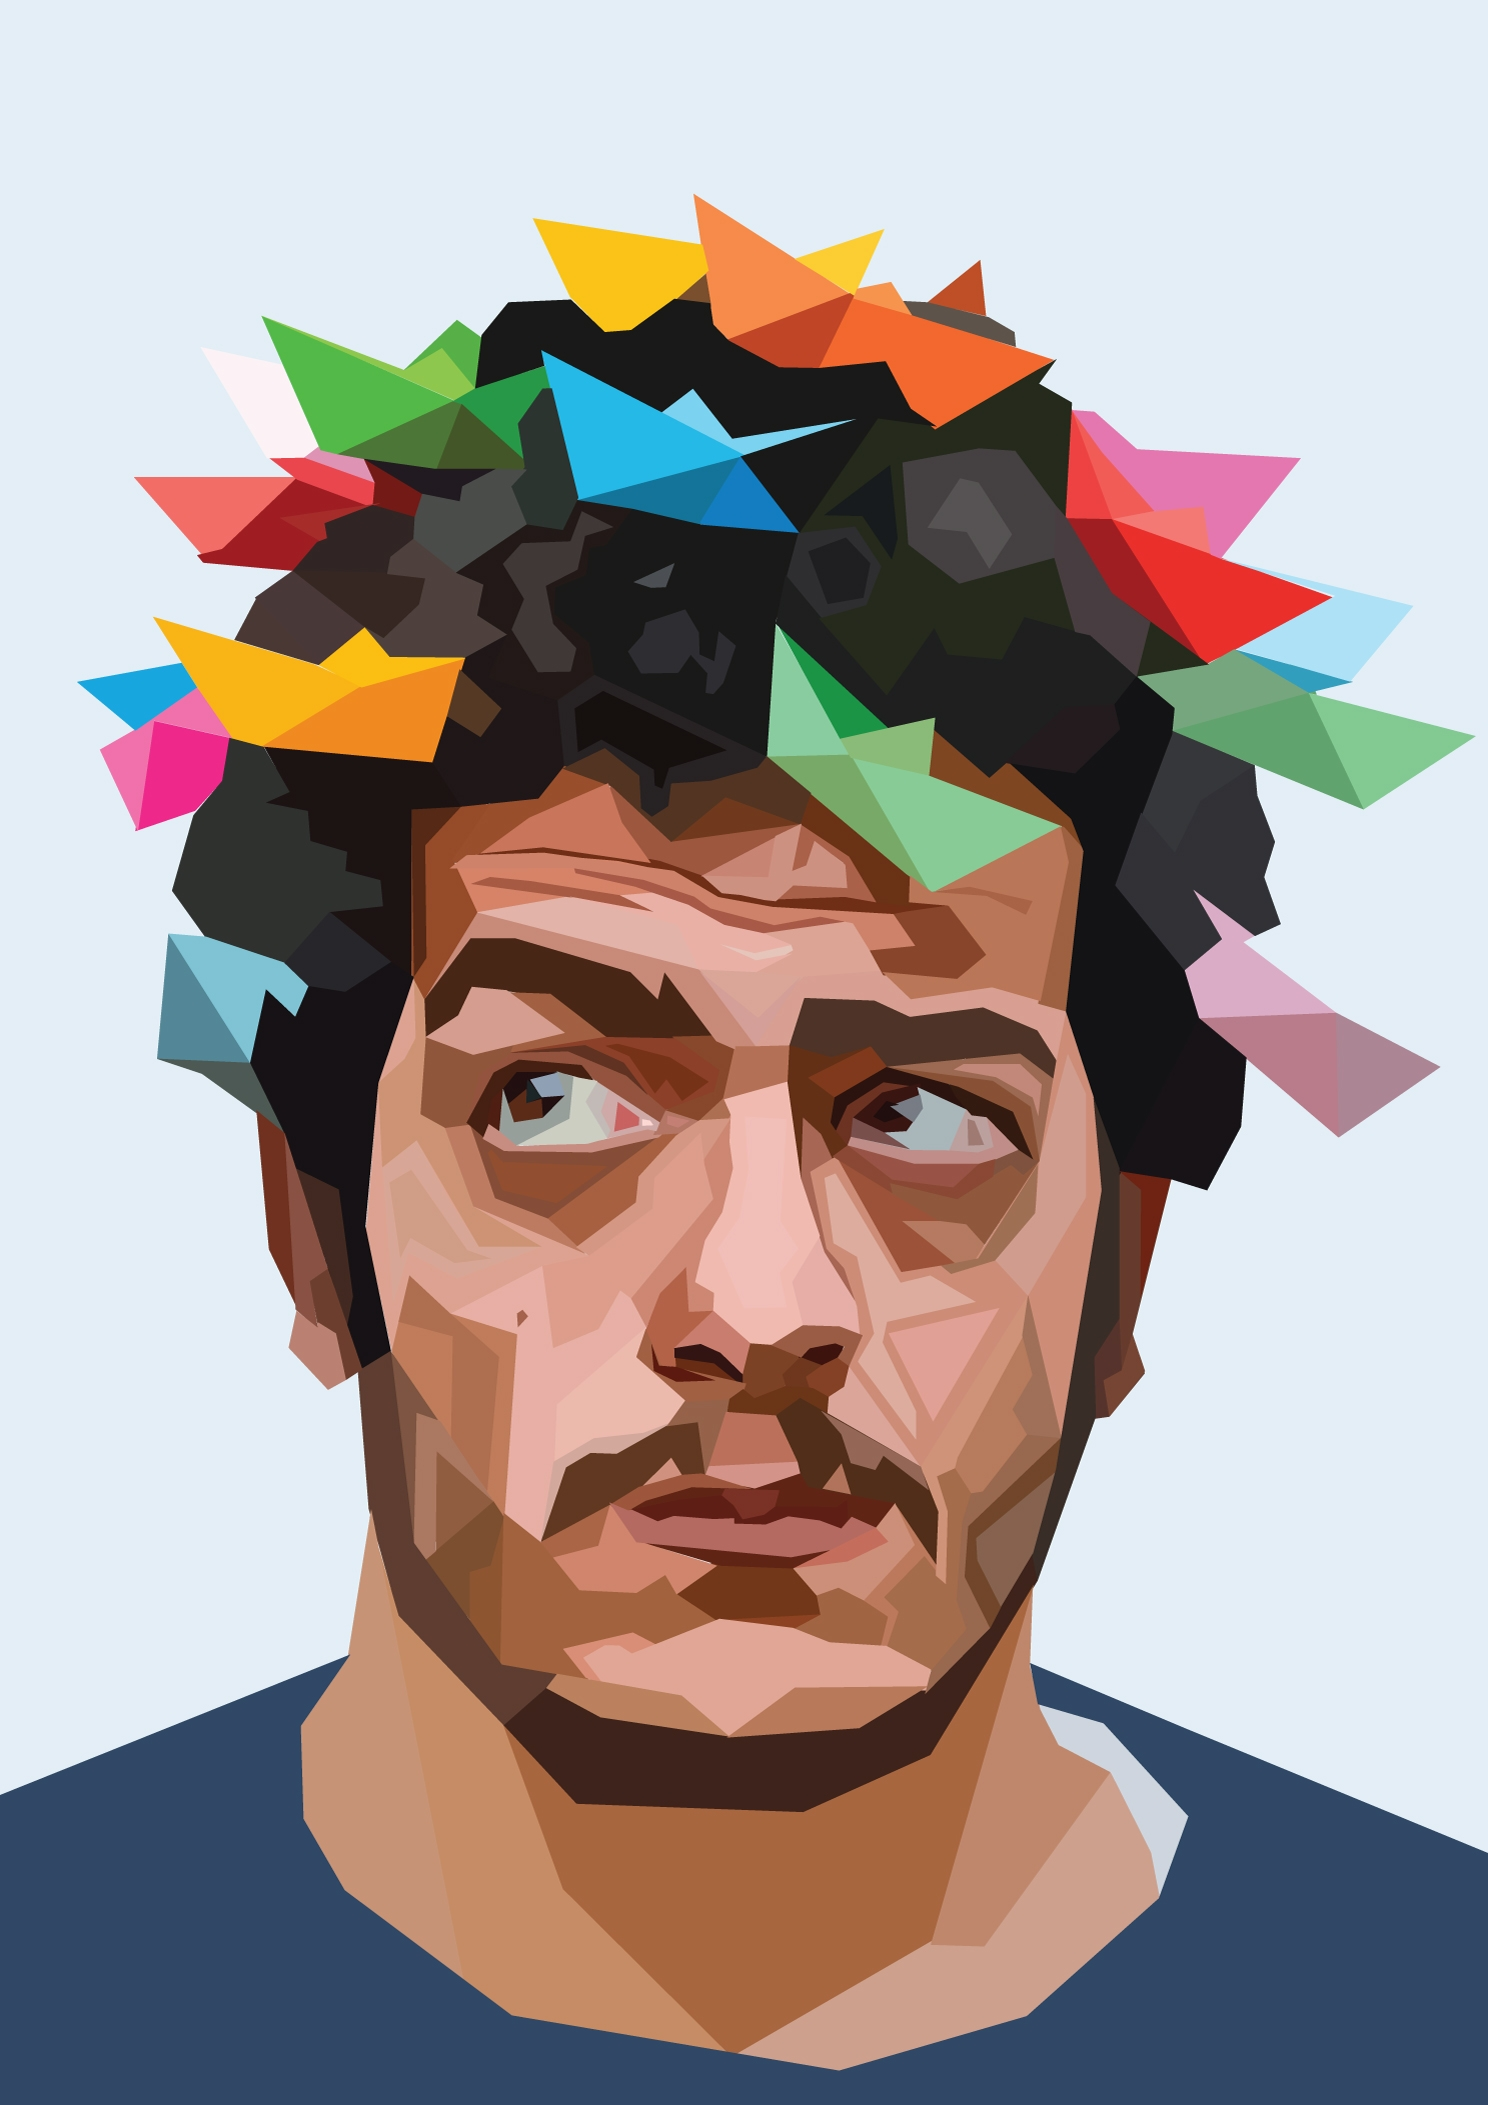 Ahmed El Abi geometric art  - illustration - mahmoudseddawy | ello